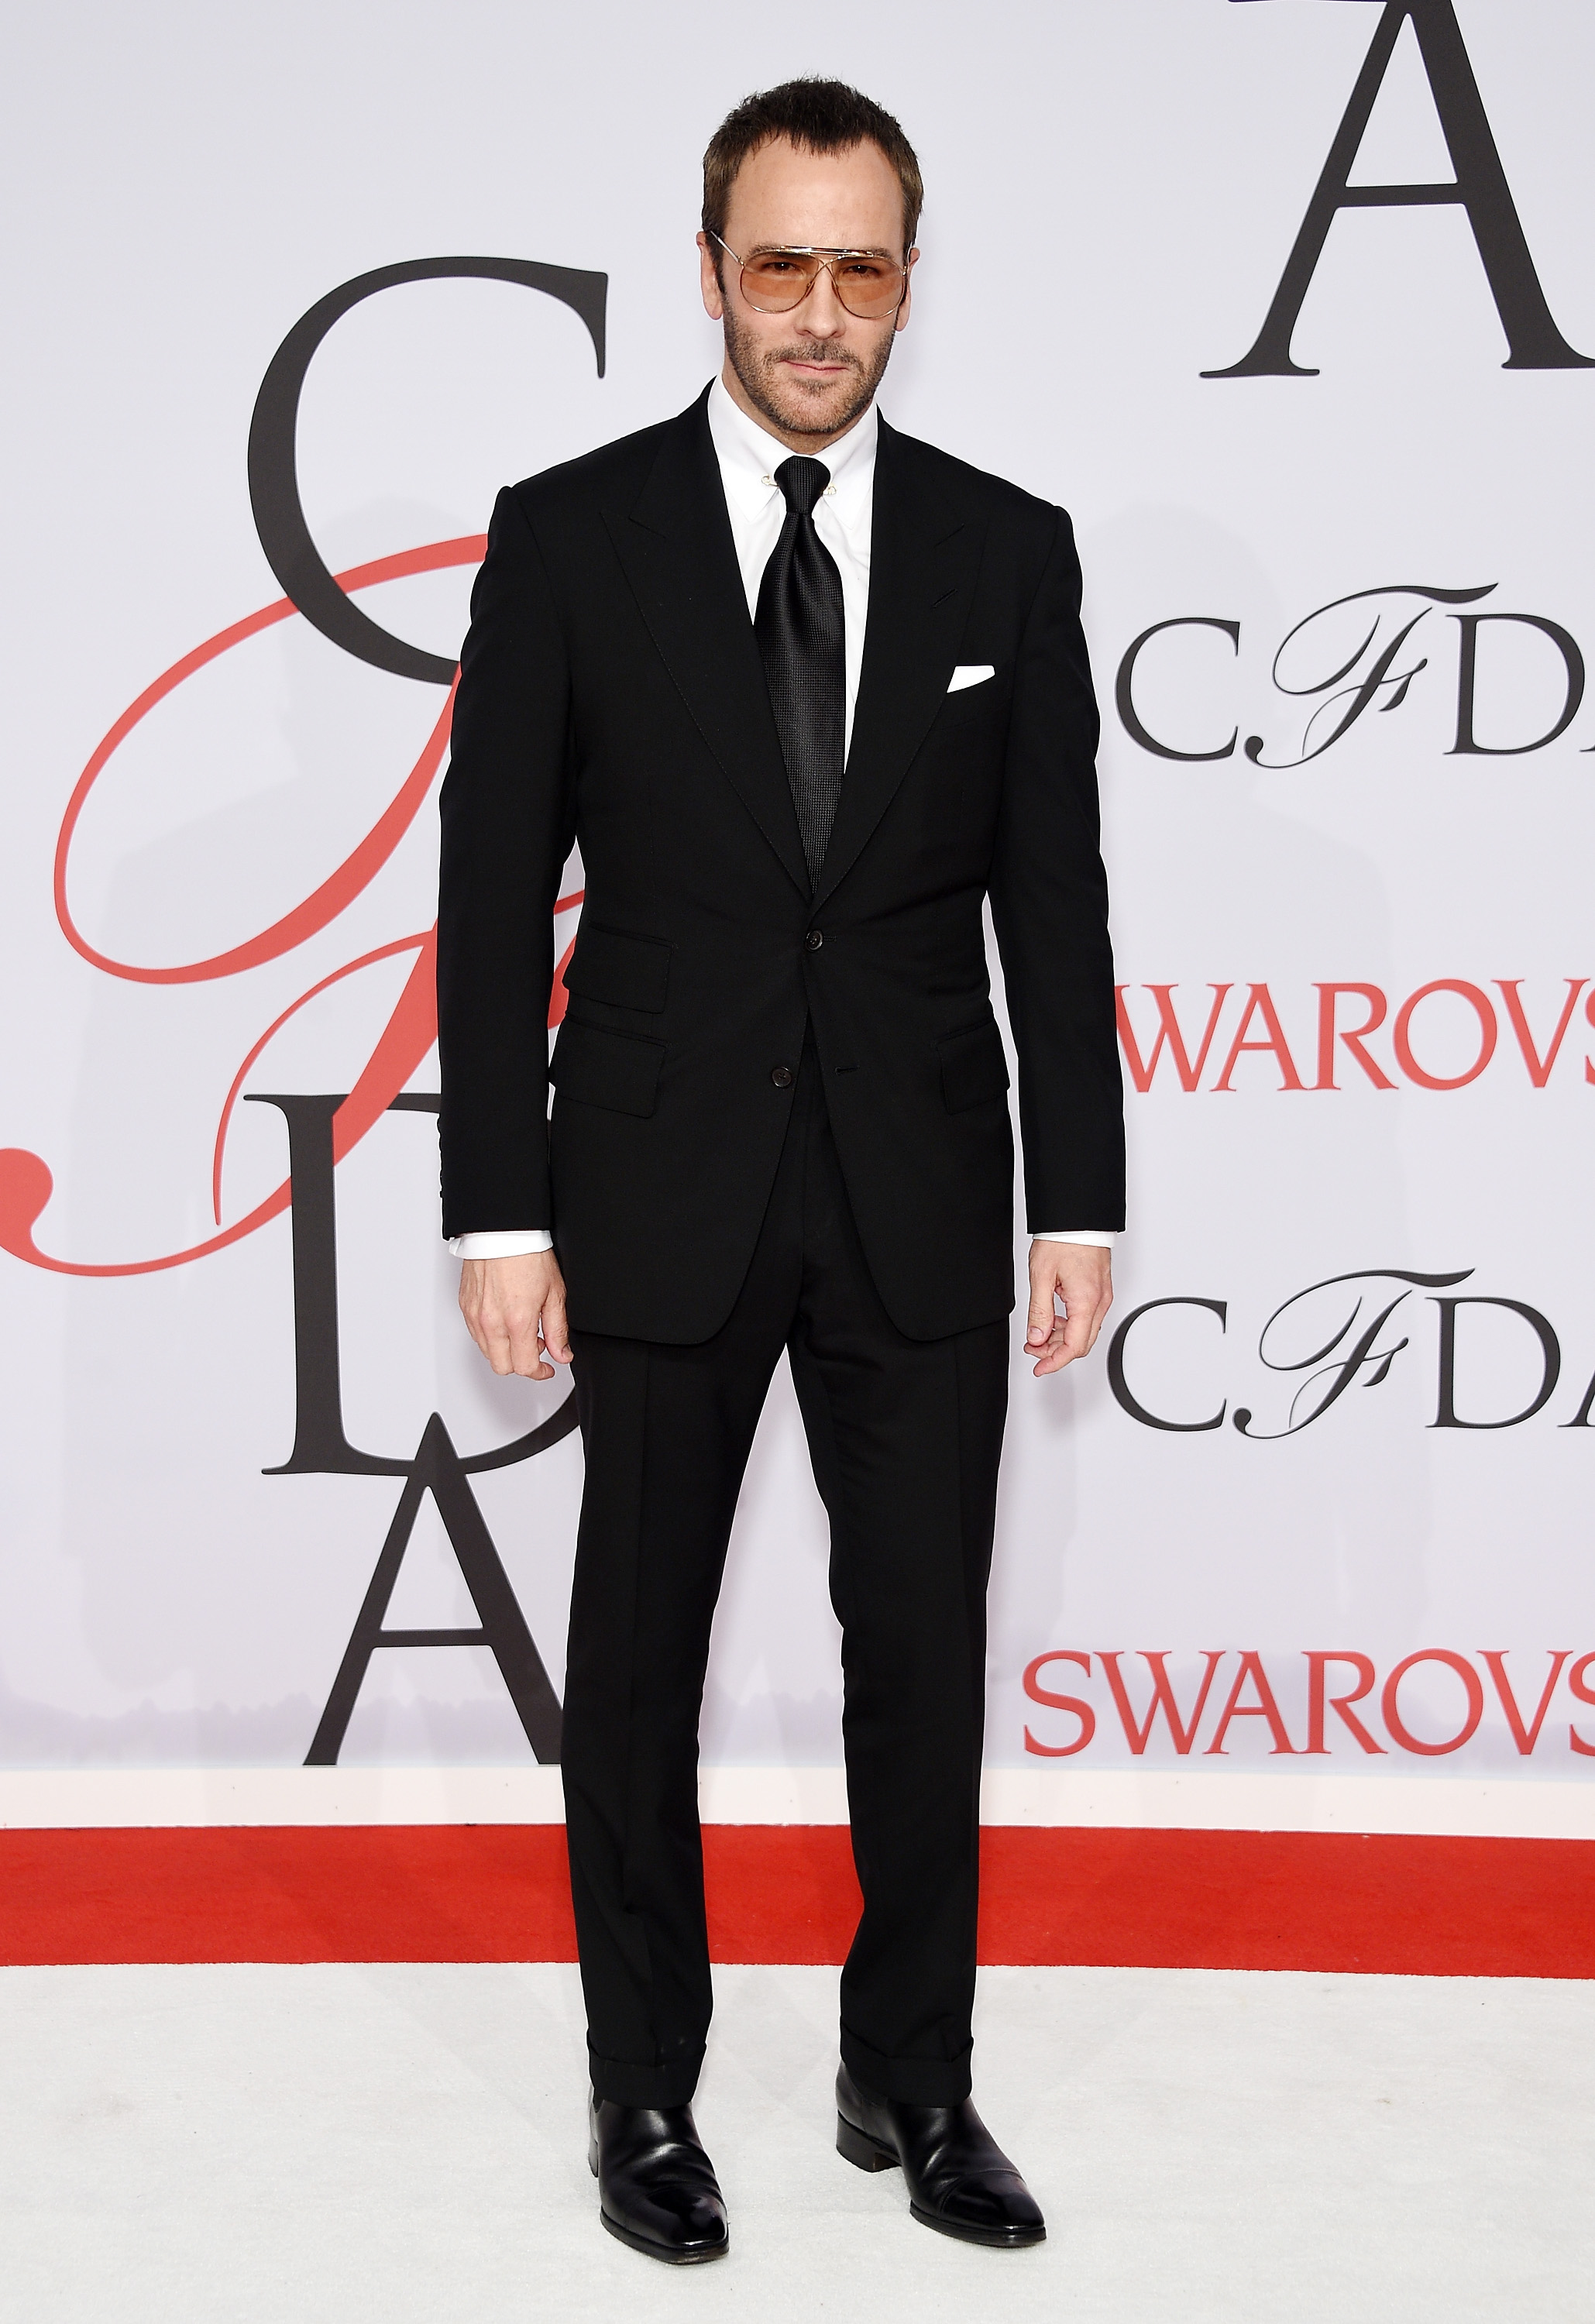 Fashion designer tom ford at the hollywood something or other awards - Tom